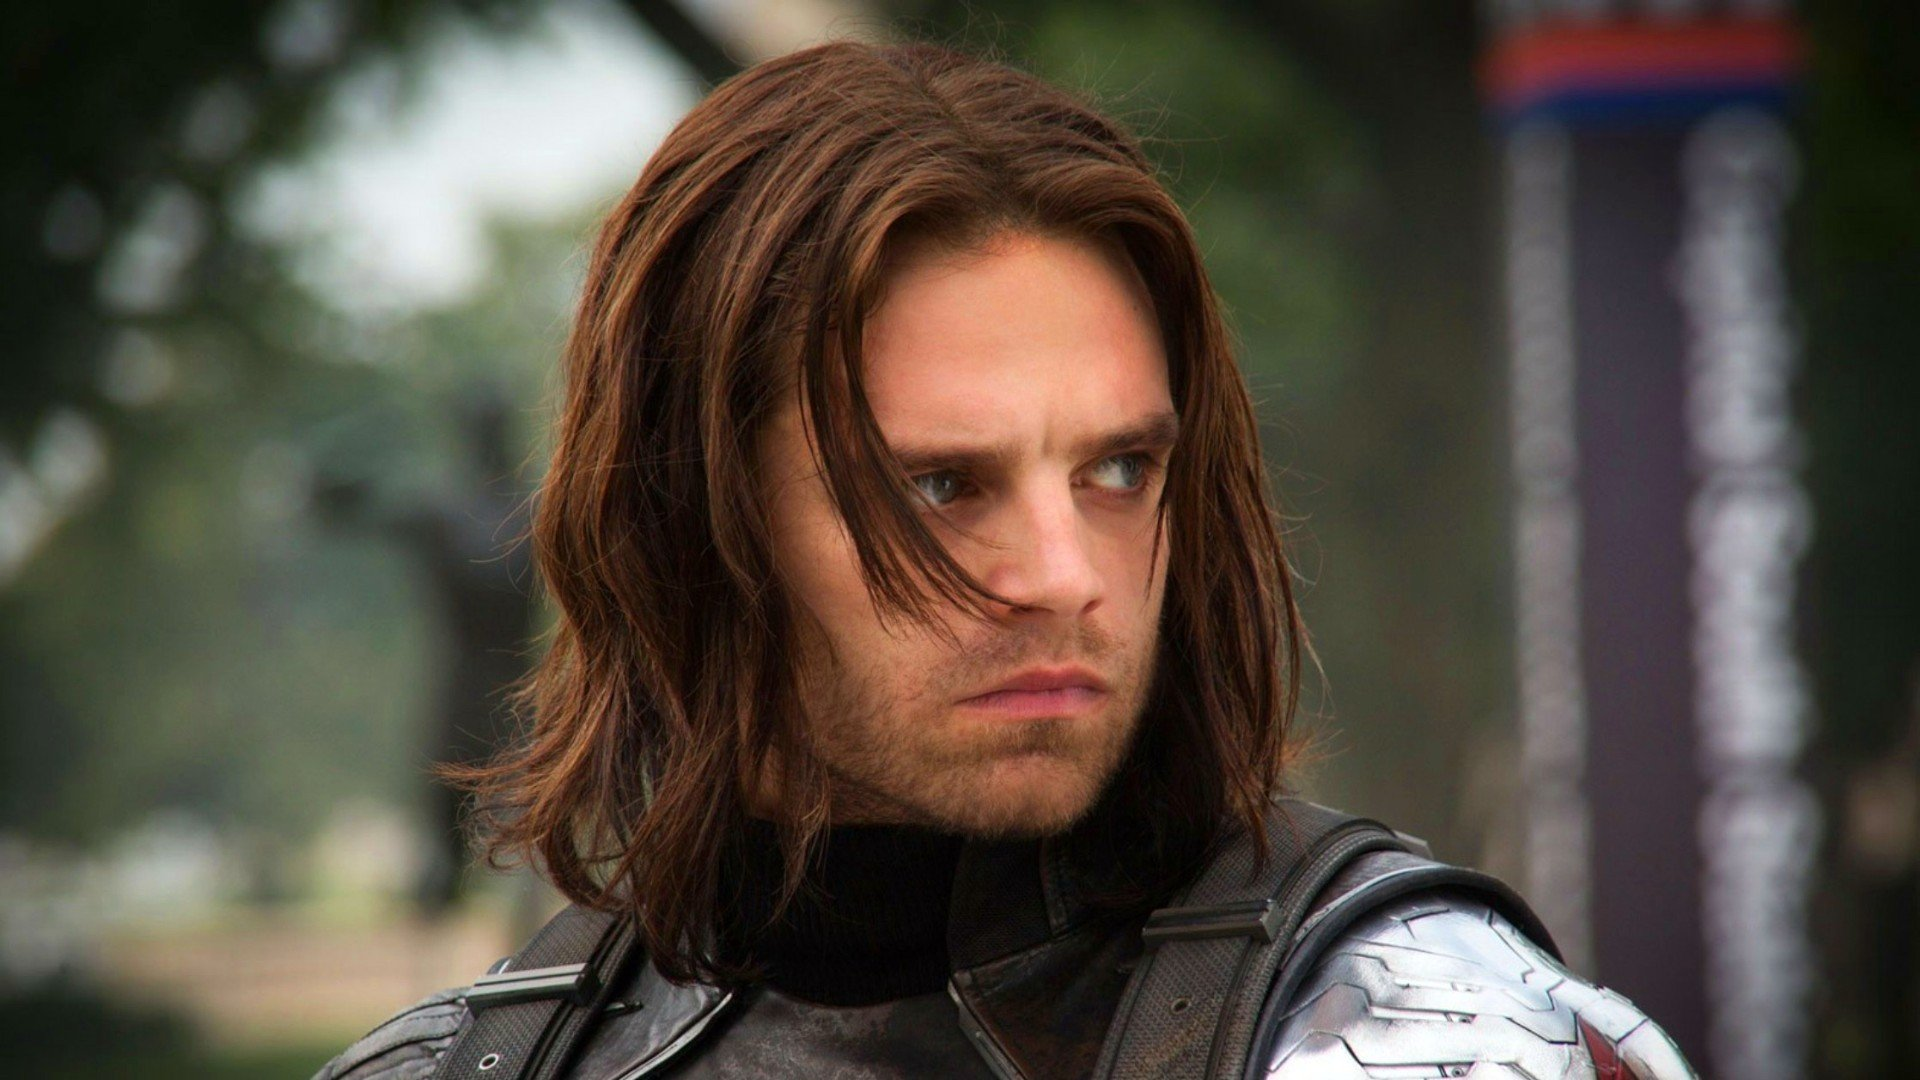 Free Captain America: The Winter Soldier high quality